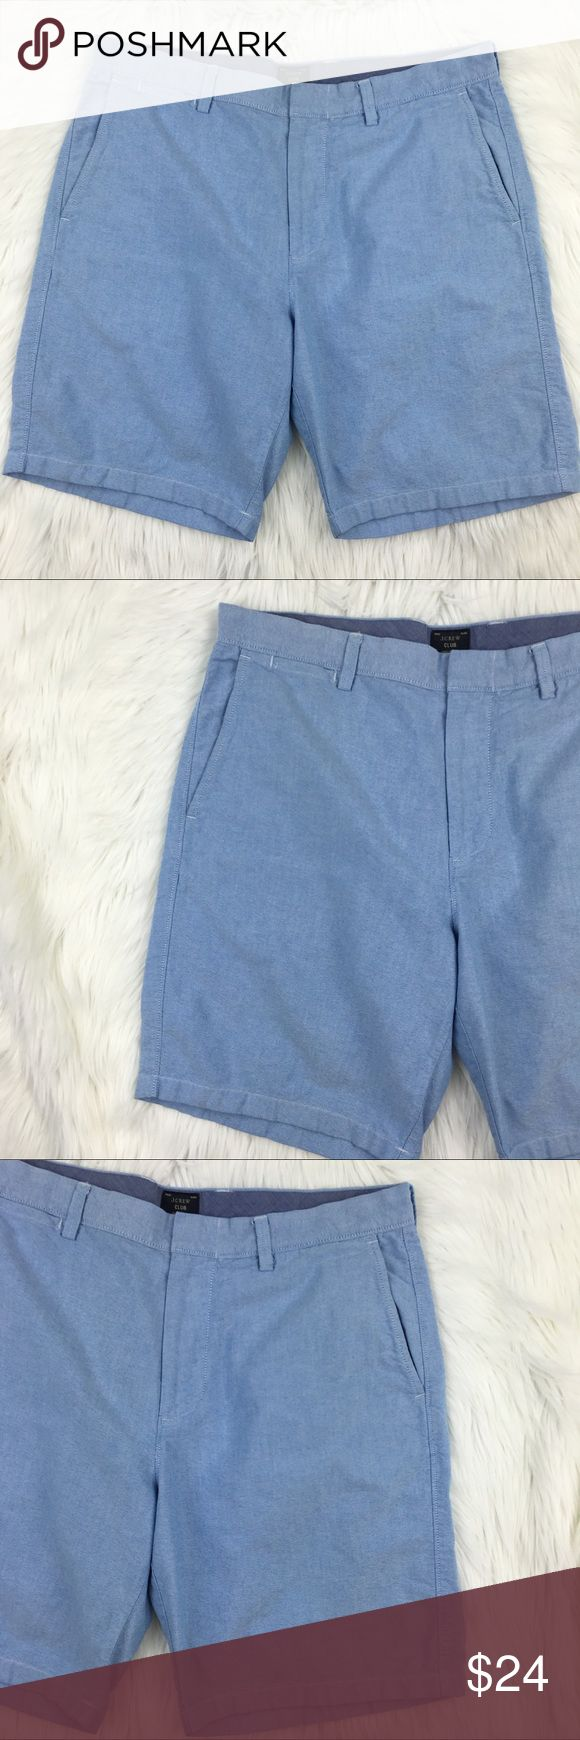 J. Crew club shorts Sz 34 J. Crew club shorts Sz 34. Gently worn in great condition. J. Crew Shorts Flat Front